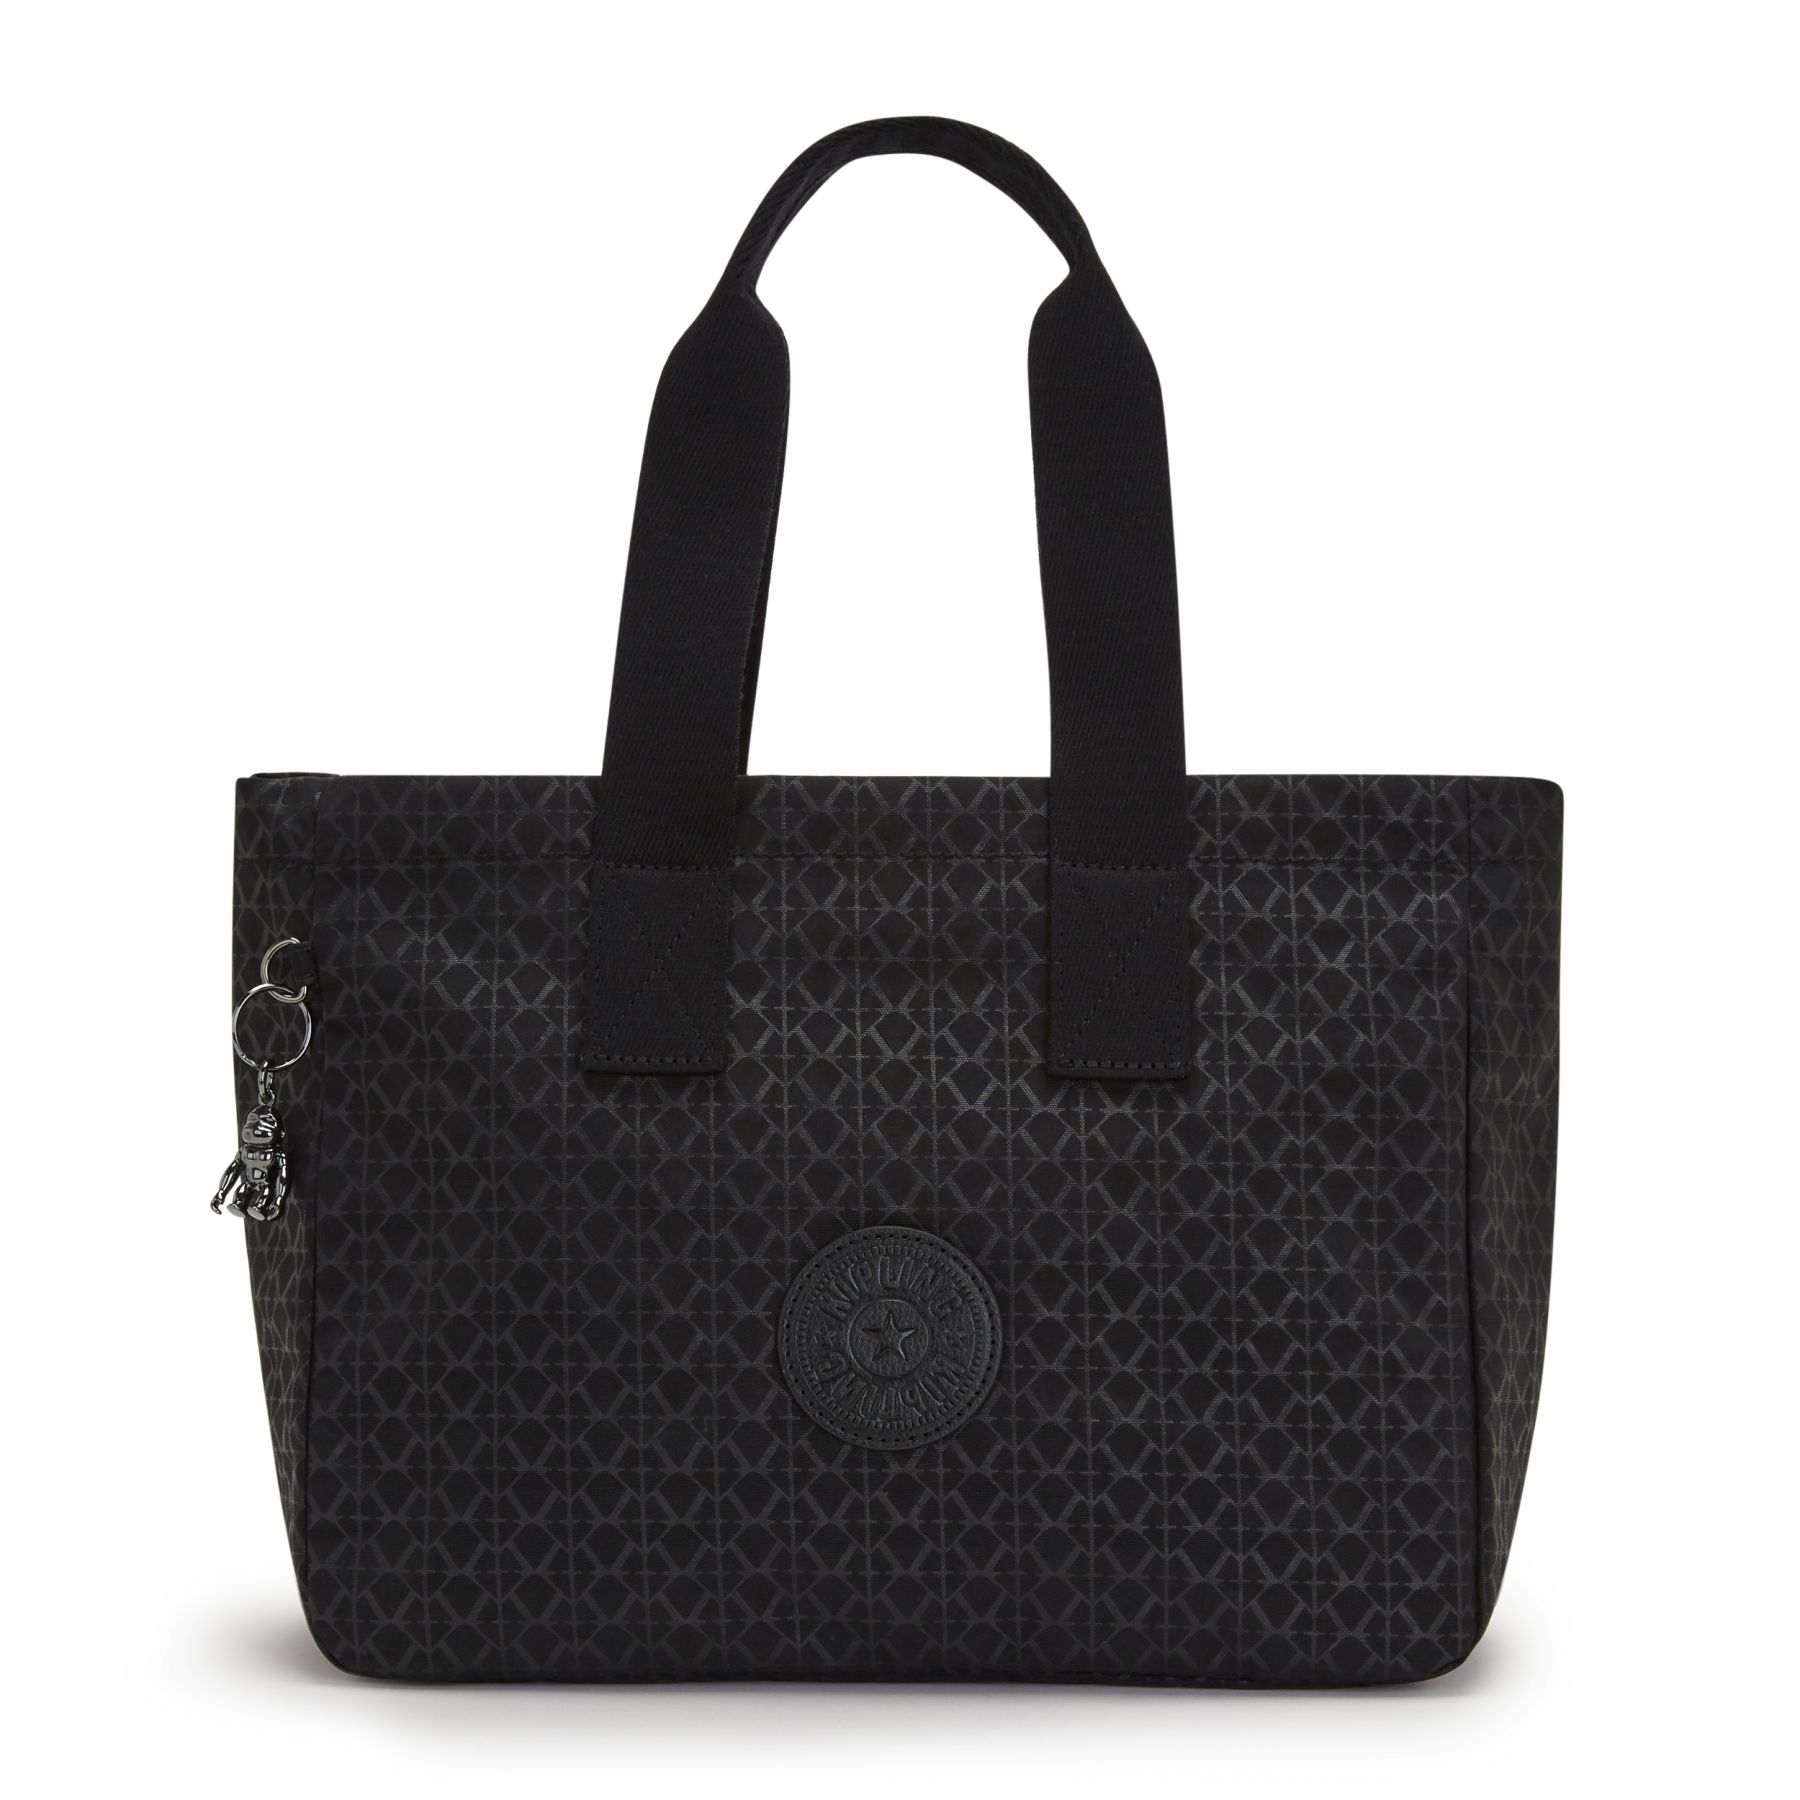 AUSTINIA ACCESSORIES by Kipling - Front view